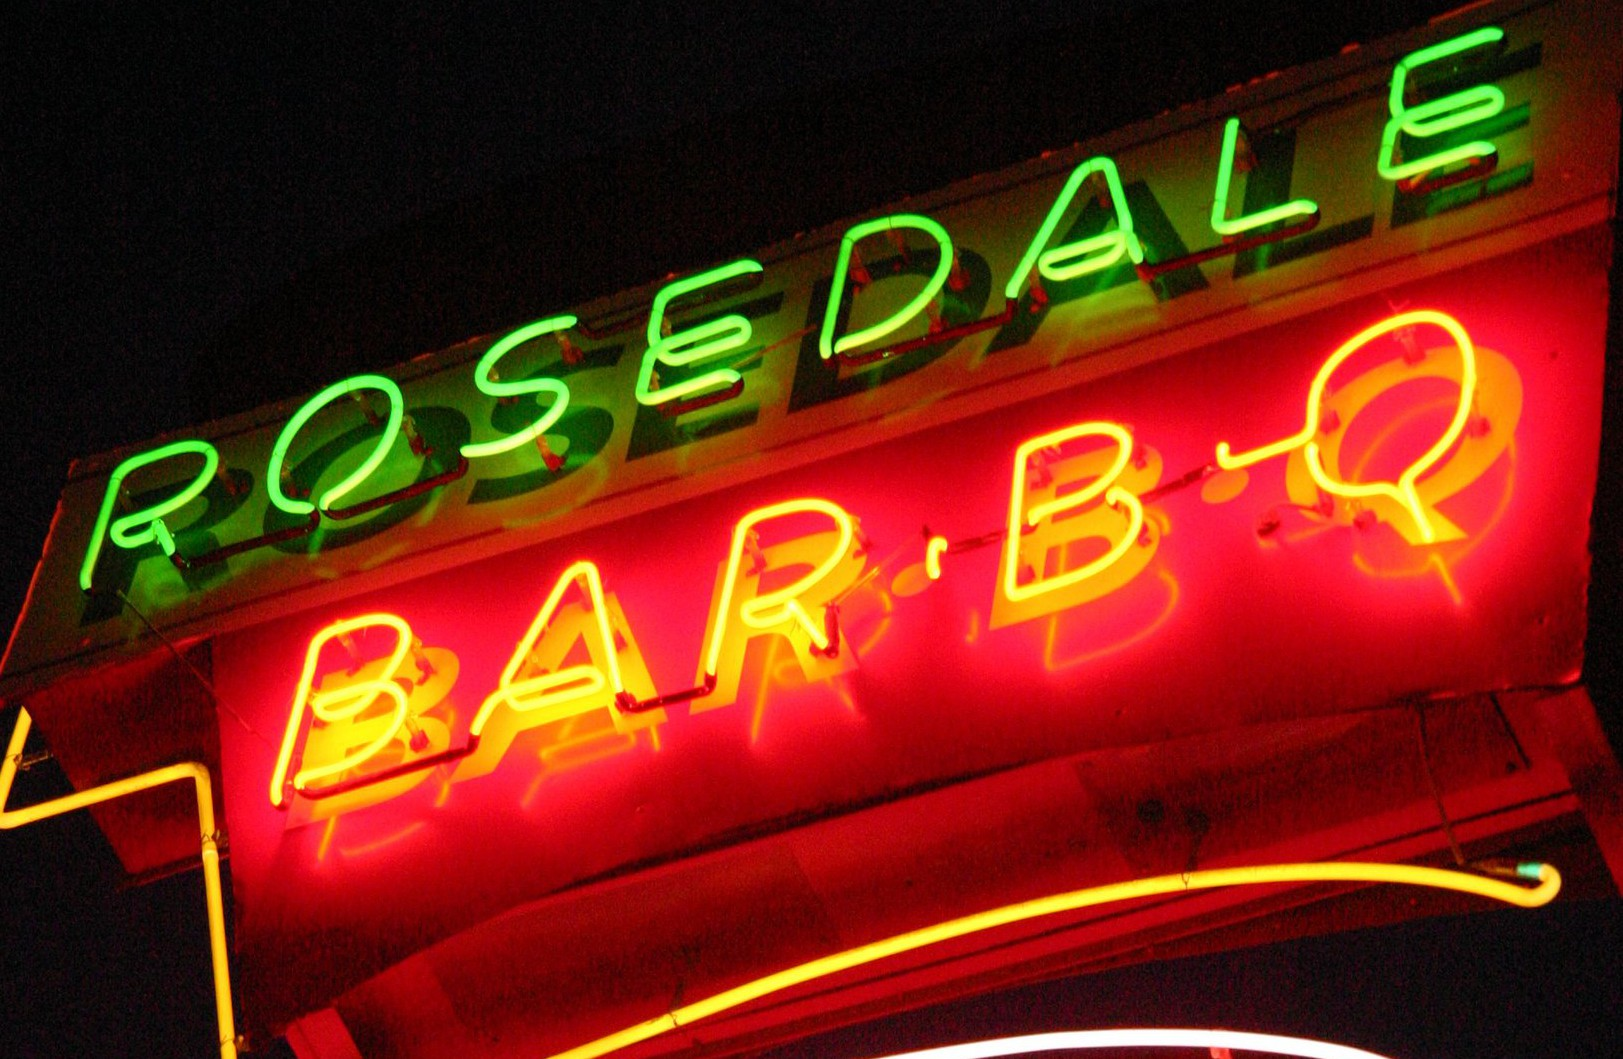 Rosedale Bar-B-Que photo